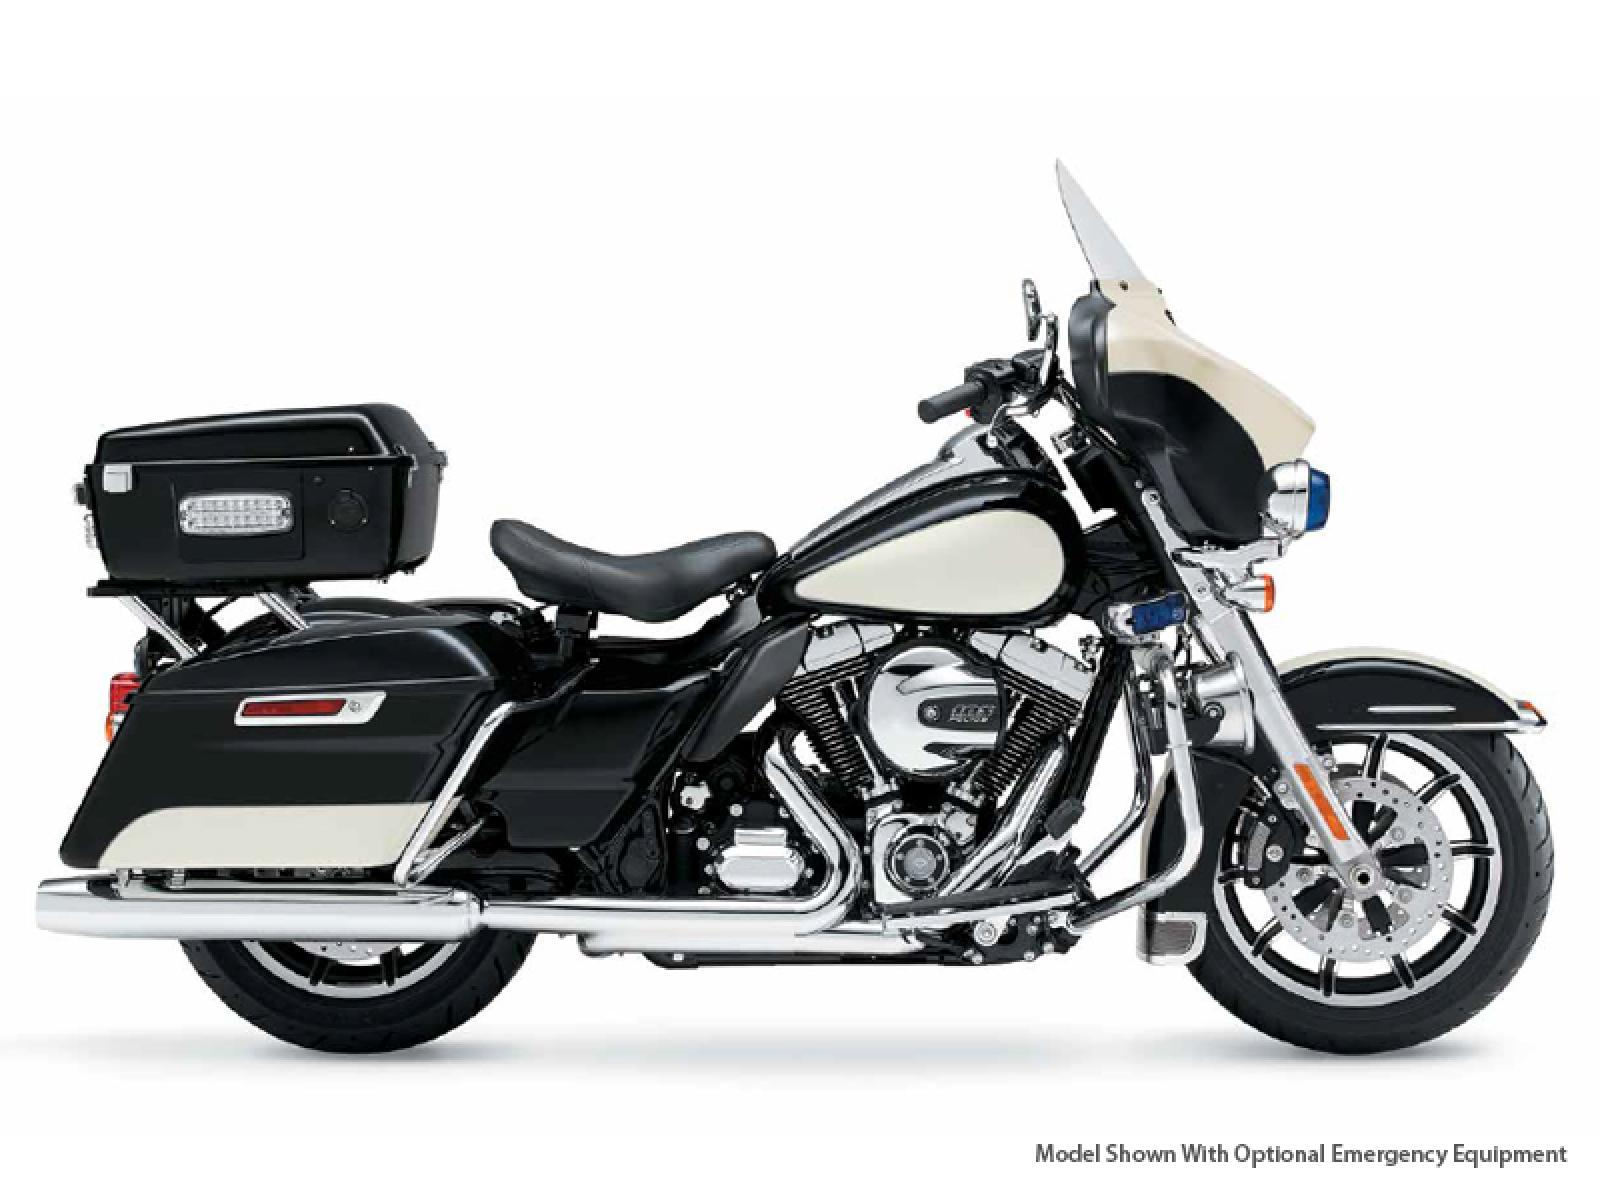 2013 harley davidson electra glide police moto zombdrive com. Black Bedroom Furniture Sets. Home Design Ideas